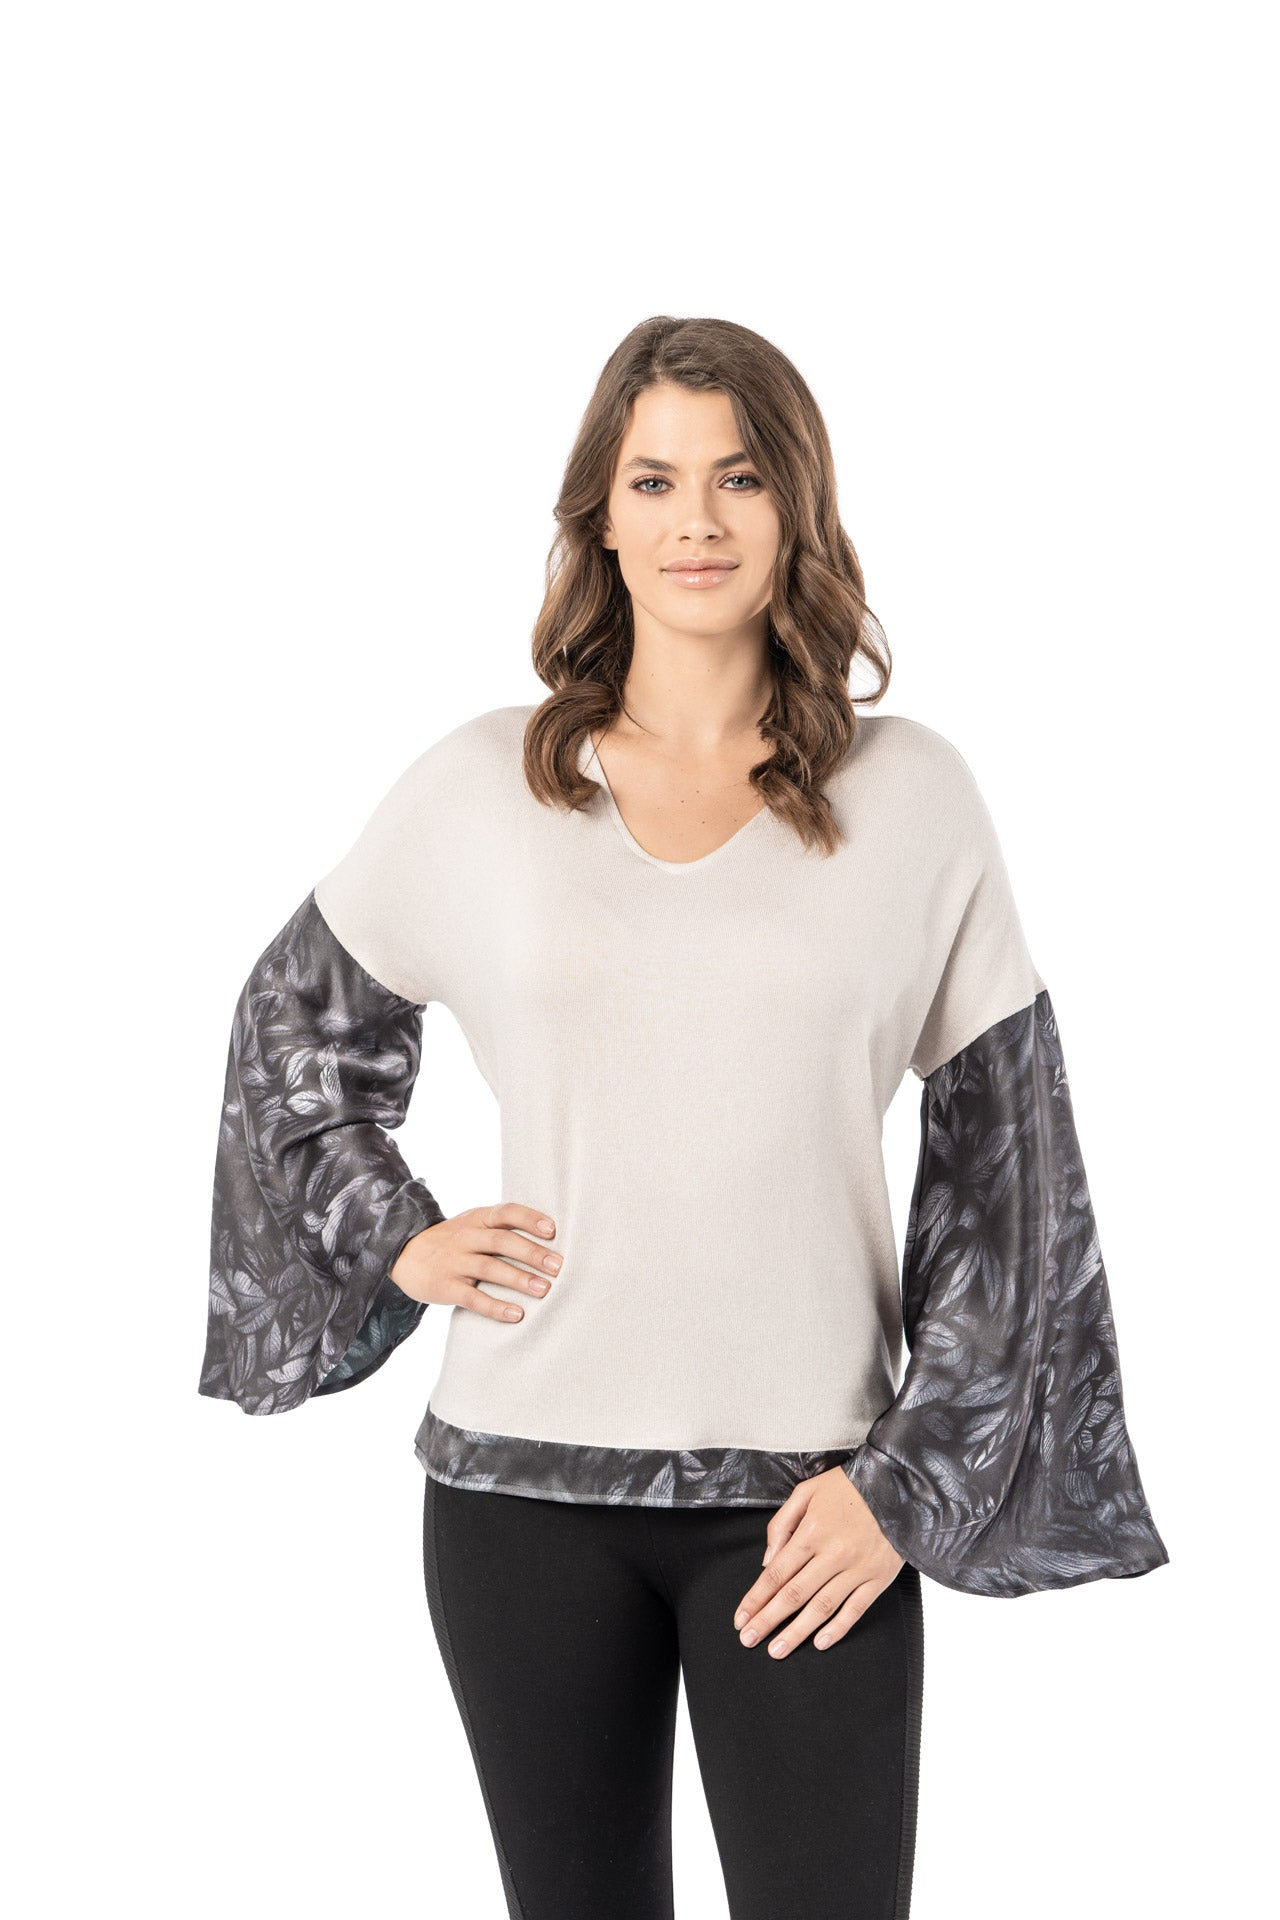 Scala Top - Silver Foliage Print Long Sleeve Top - artTECA